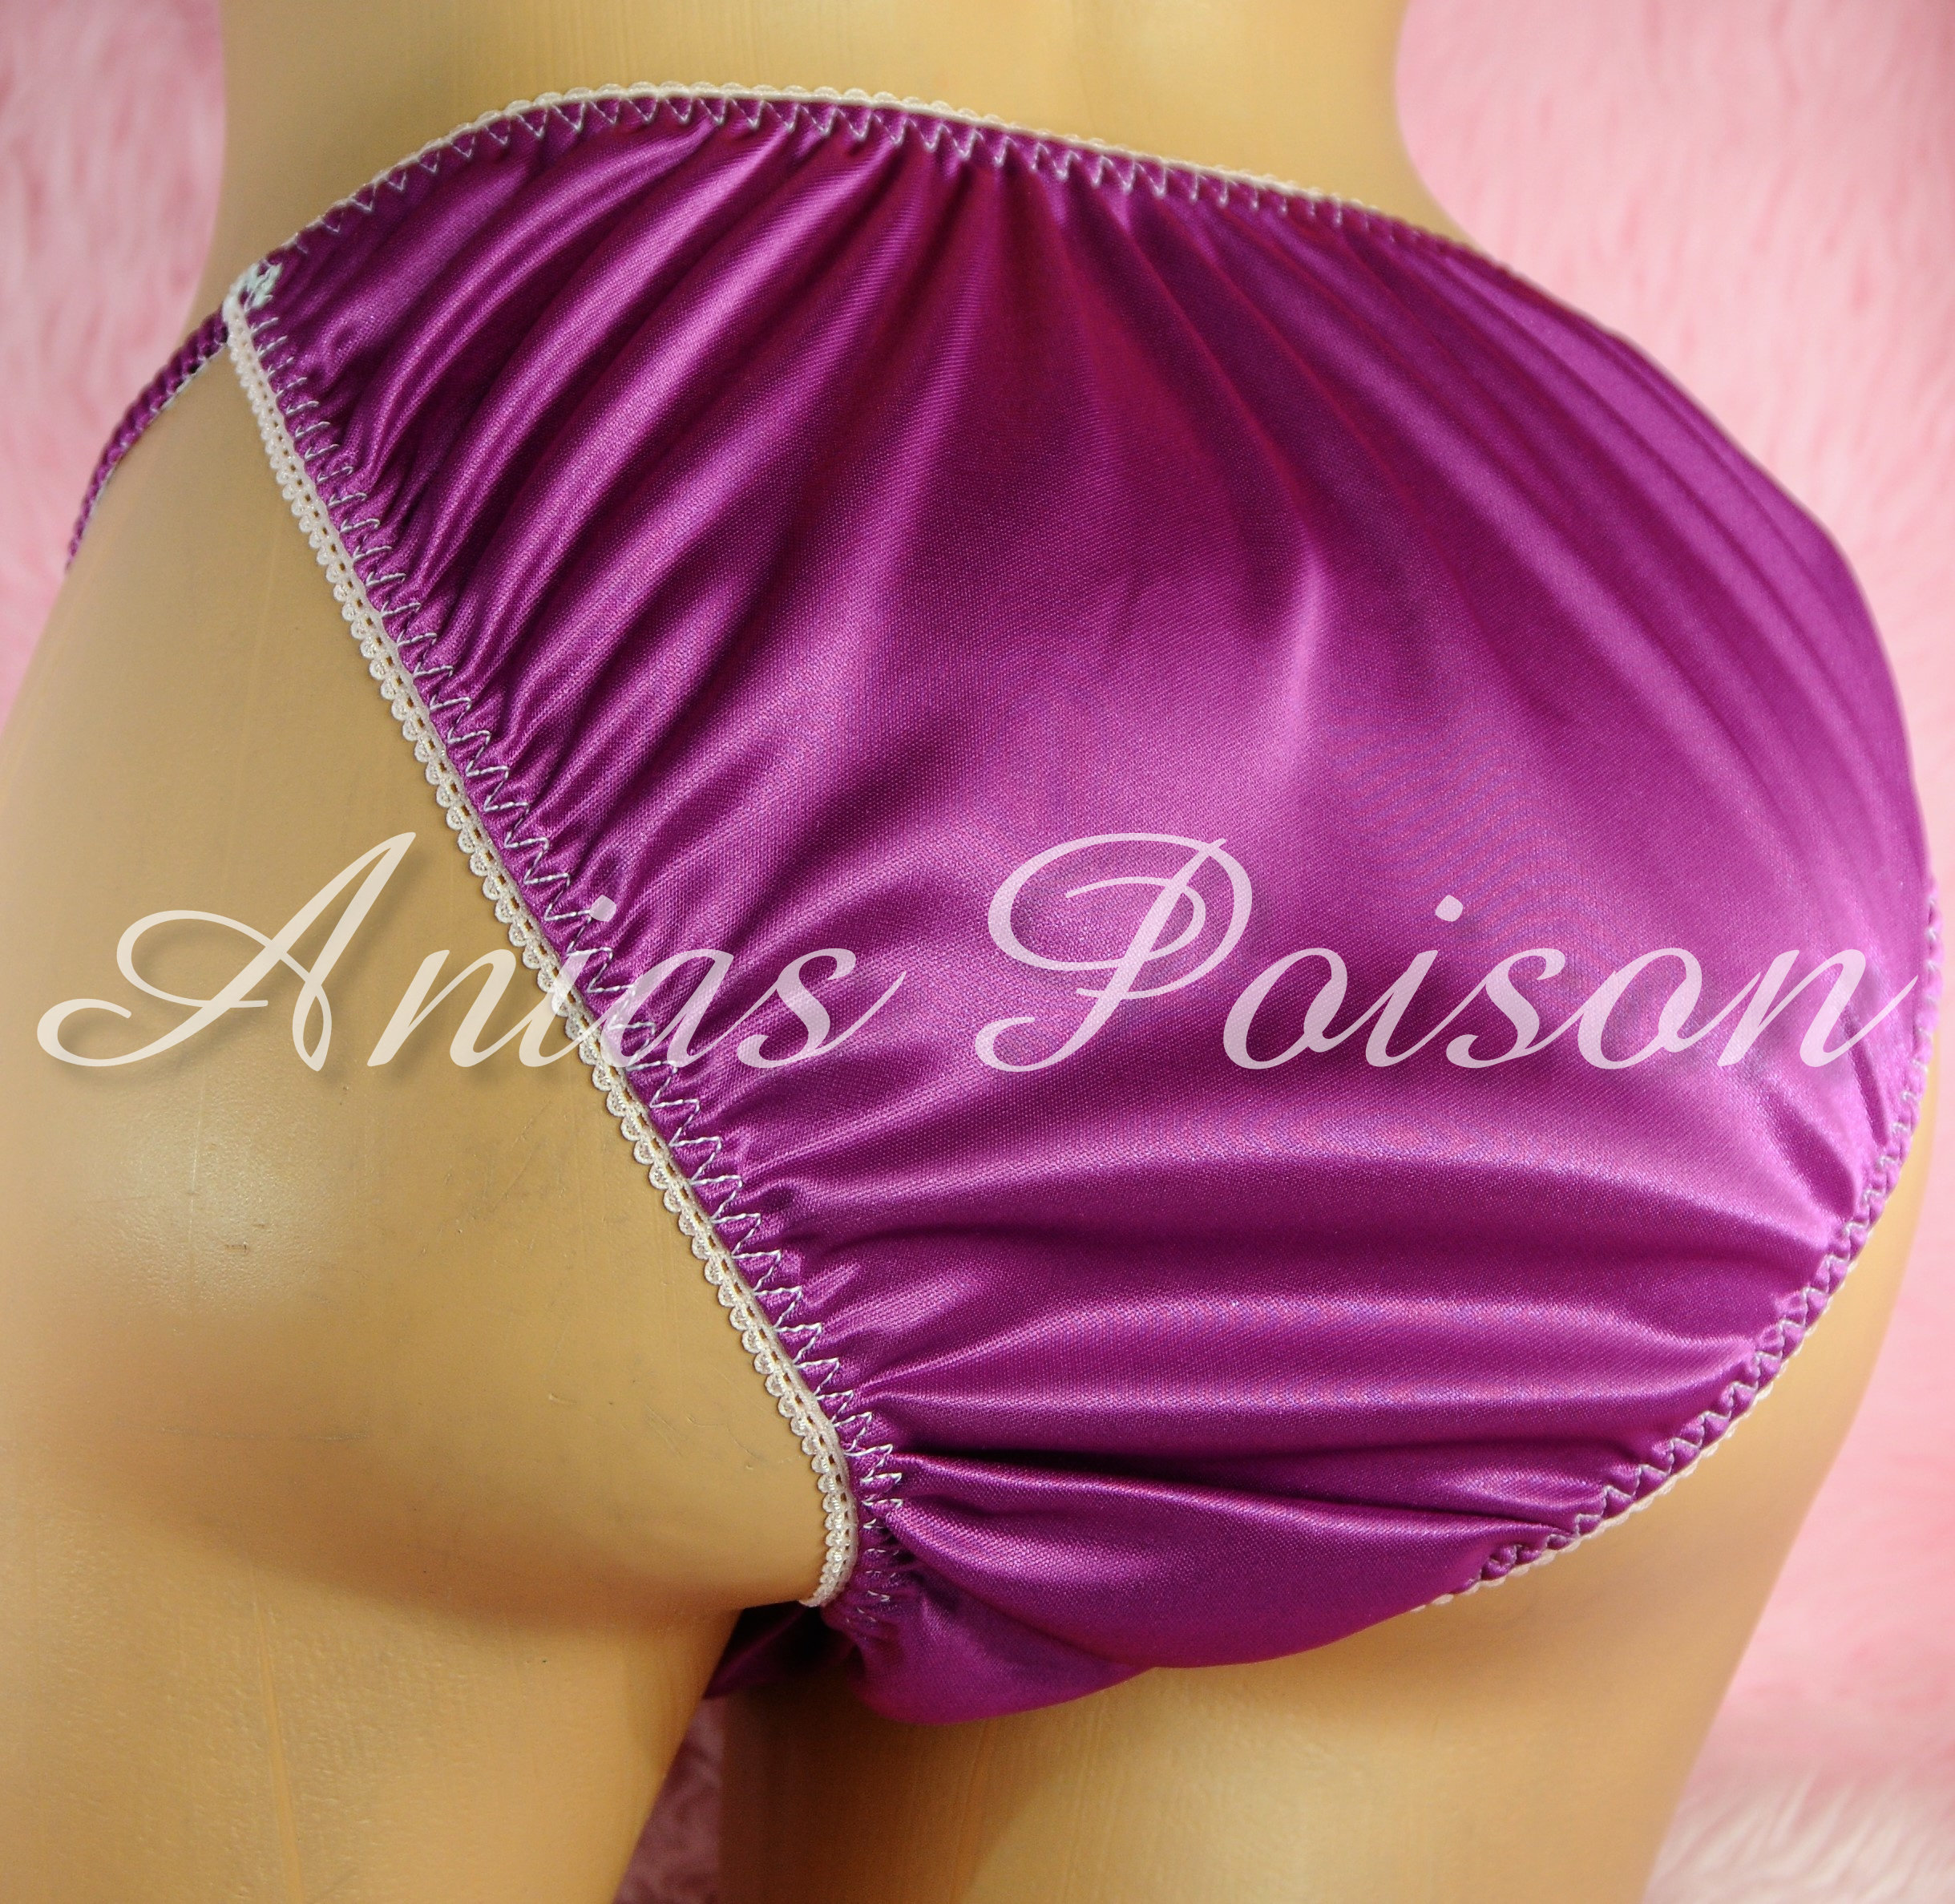 Ania's Poison MANties S - XL shiny Rare Butter Soft Collection polyester string bikini sissy mens underwear panties